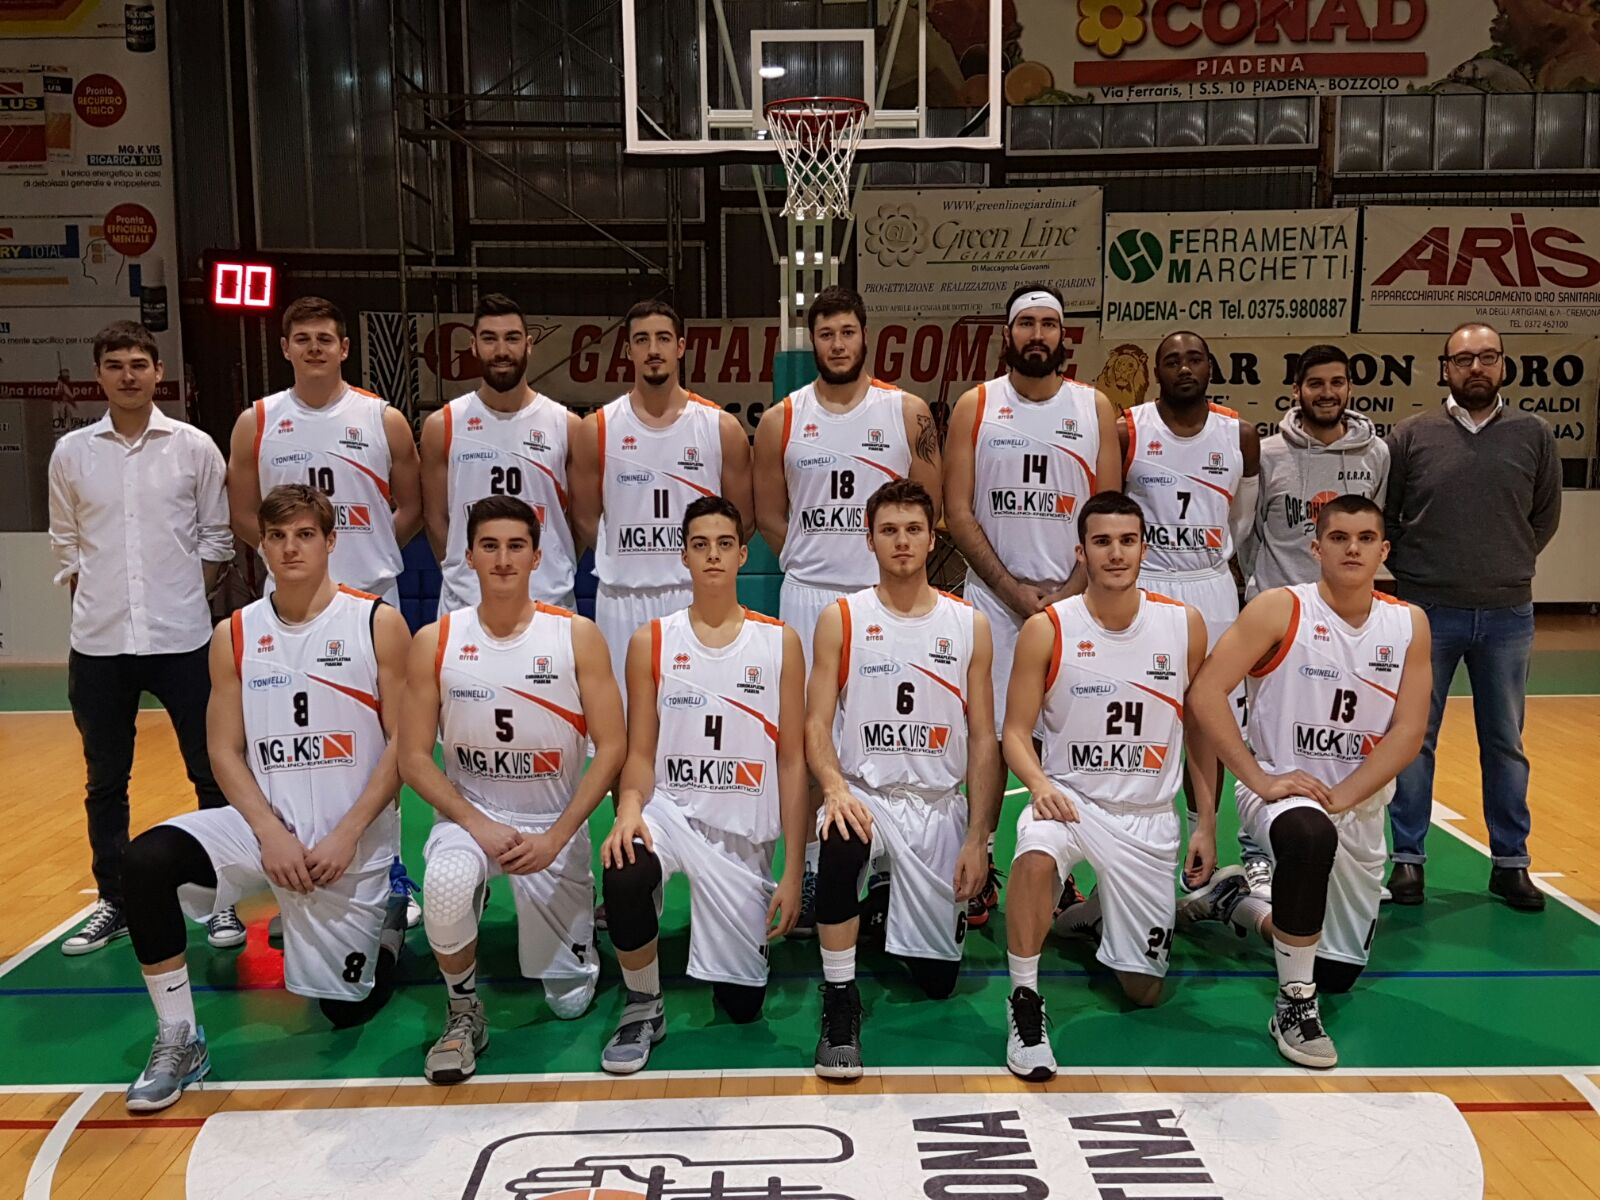 Serie CGold - 2016-17